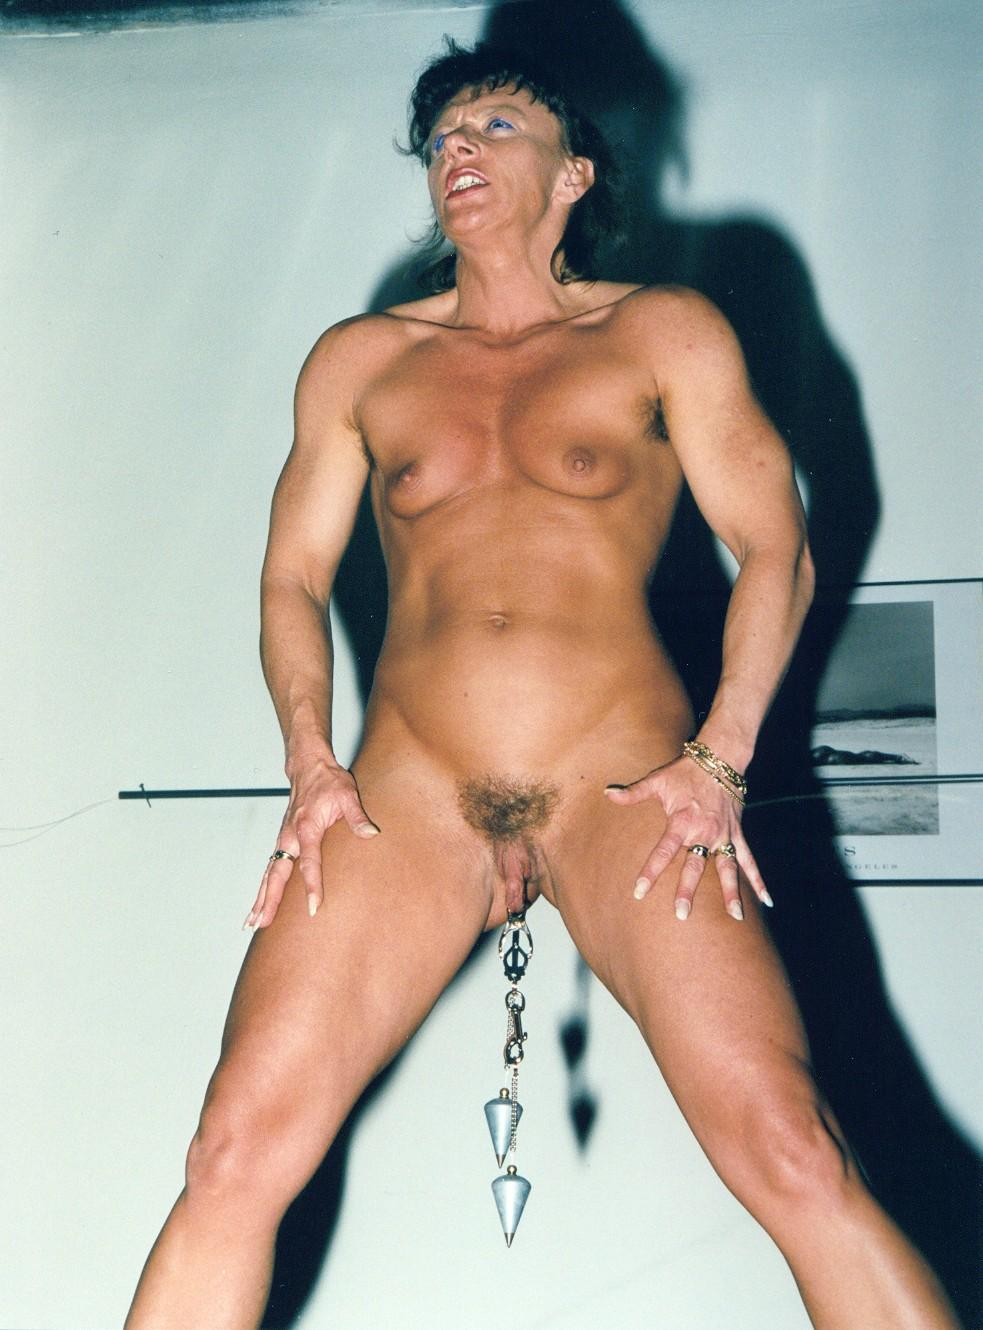 from Morgan nude female bodybuilding art